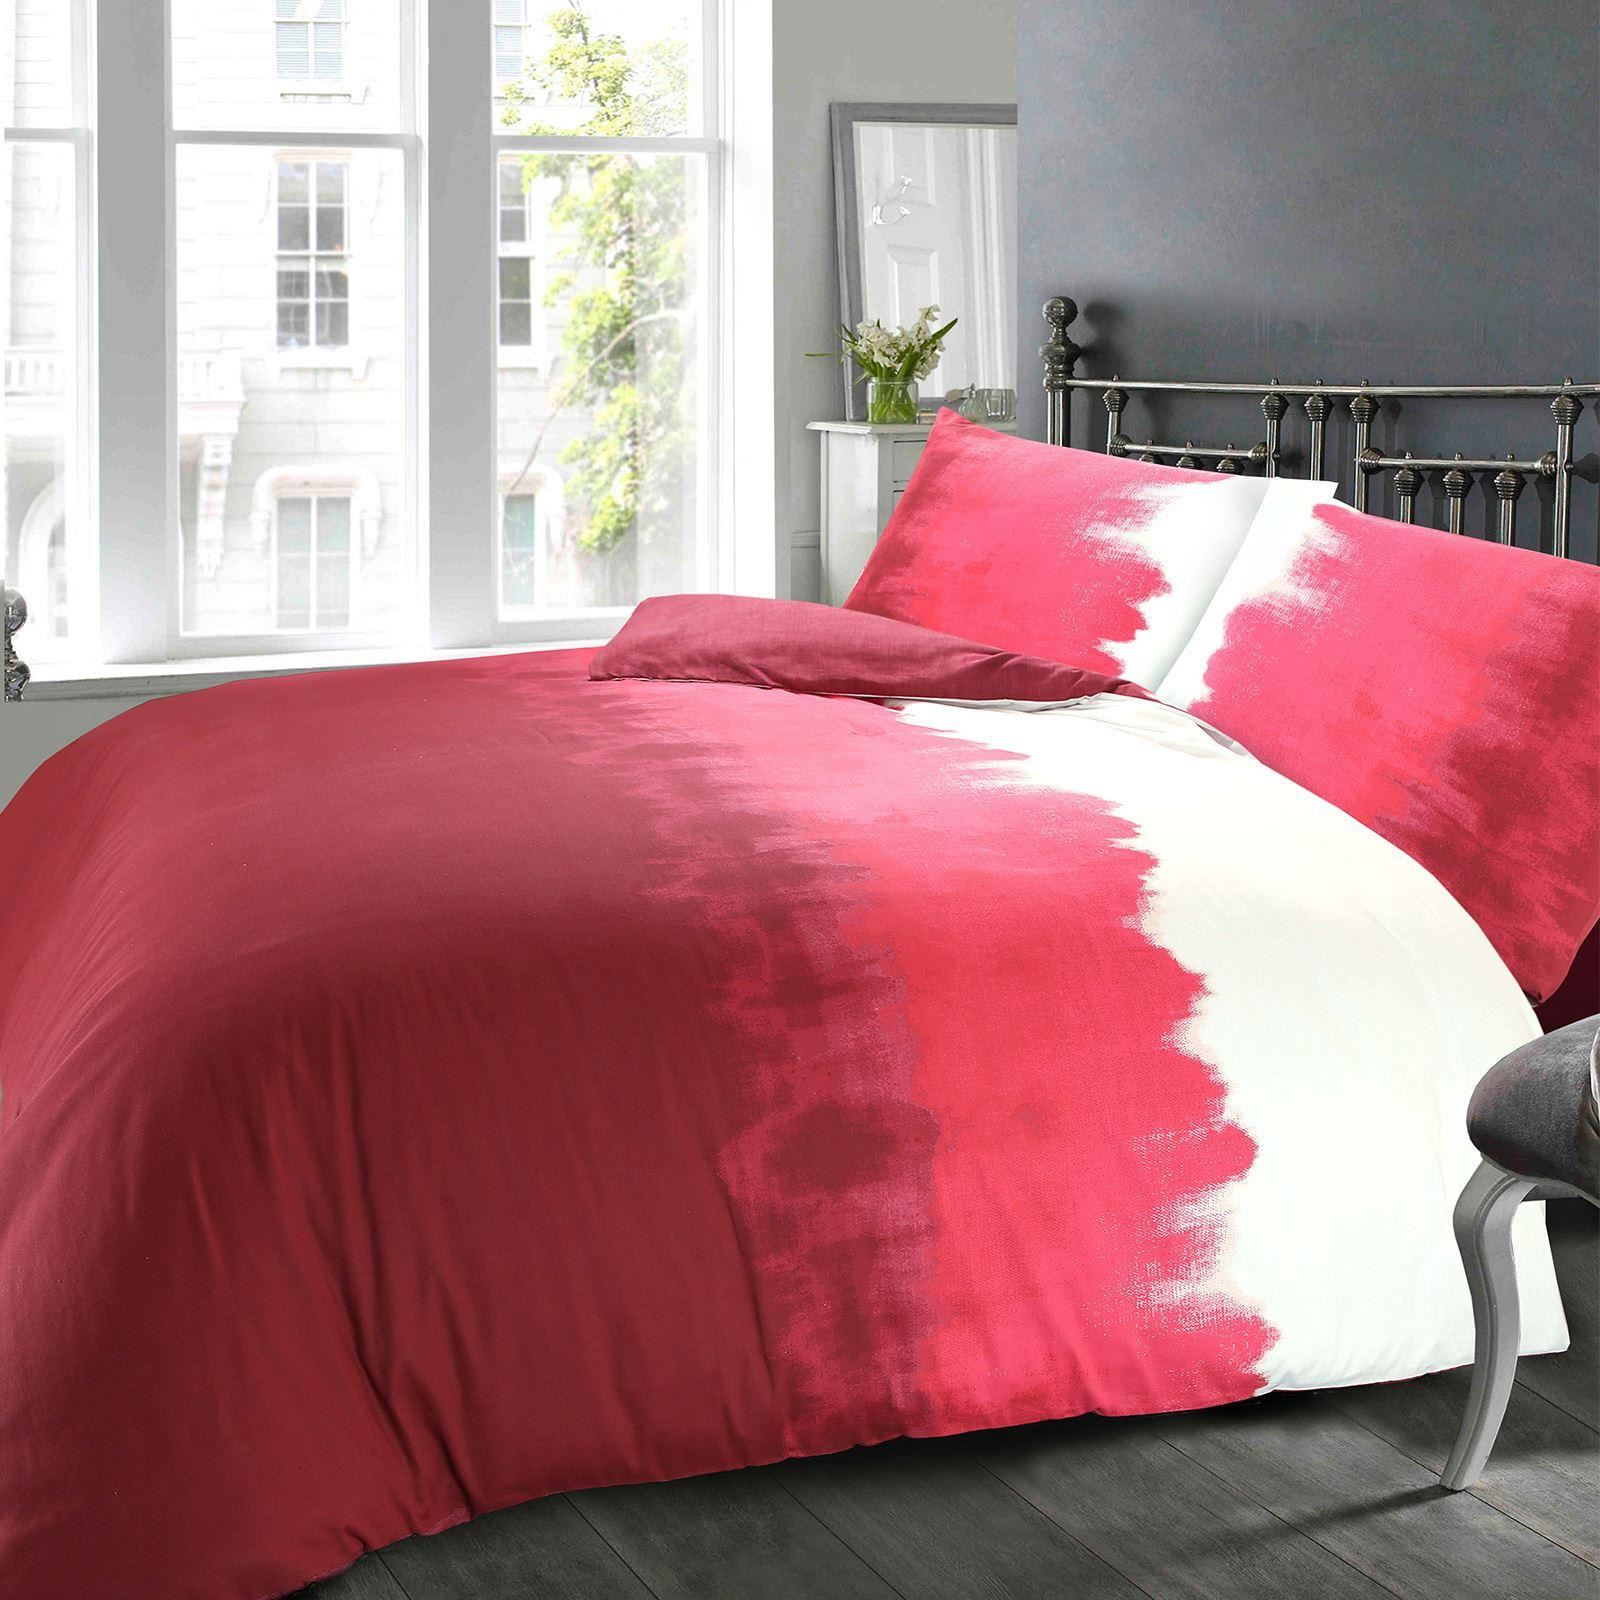 black primitive wooden set cal cheap ideas bedding red white california headboard brown wrap skirt quilt country walls ruffle bedroom with bed painted rustic around king